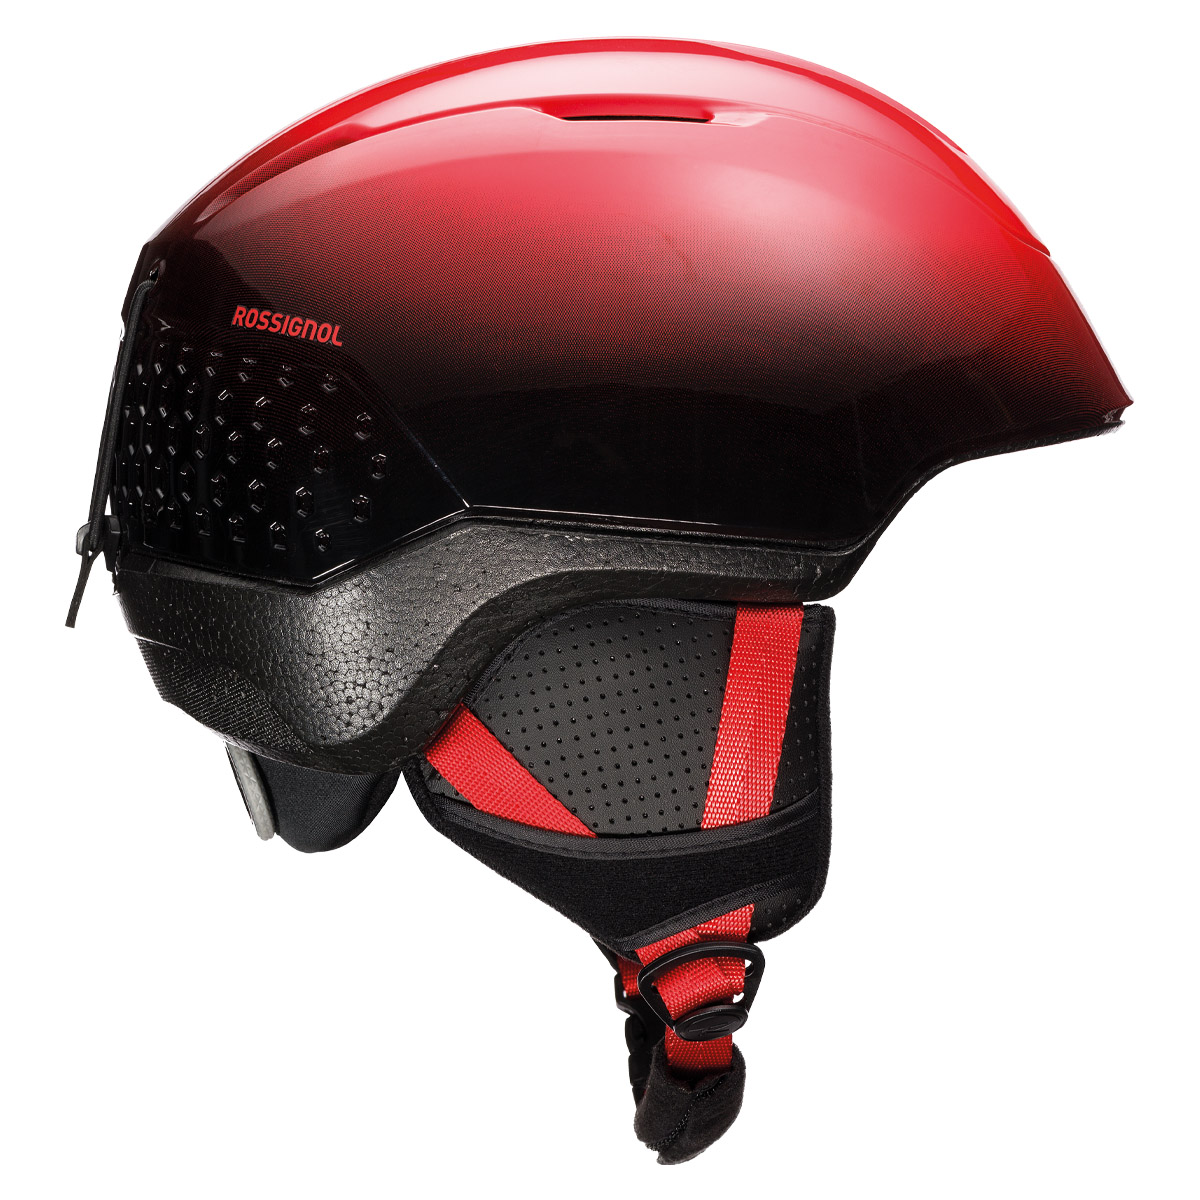 Casco sci Rossignol Whoopee Impacts Red (Colore: red, Taglia: 52/55.5)